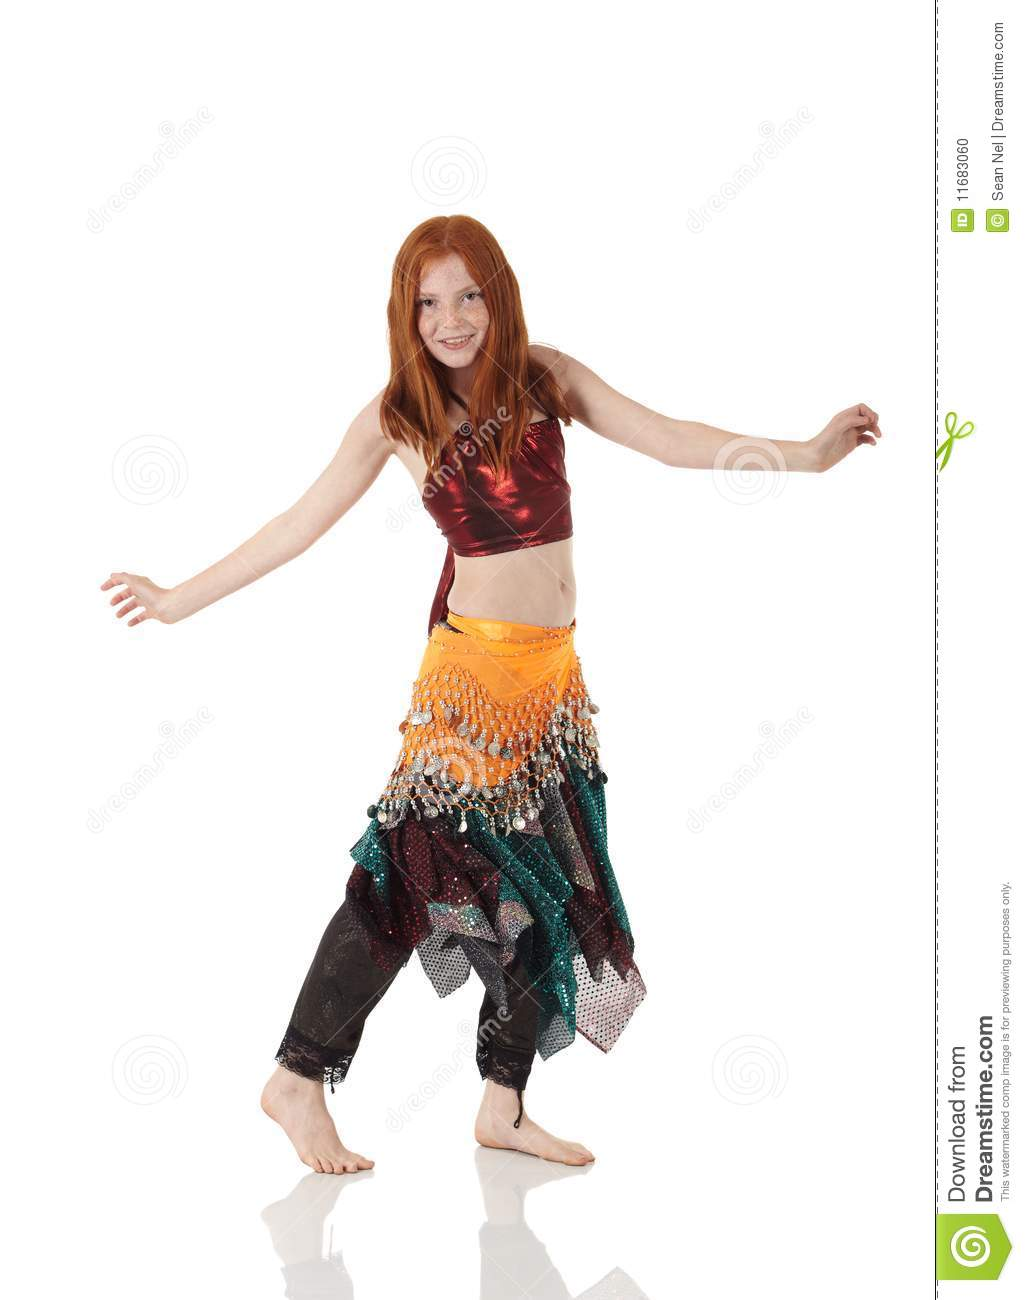 fe4184891250 Young belly dancing girl stock photo. Image of isolated - 11683060